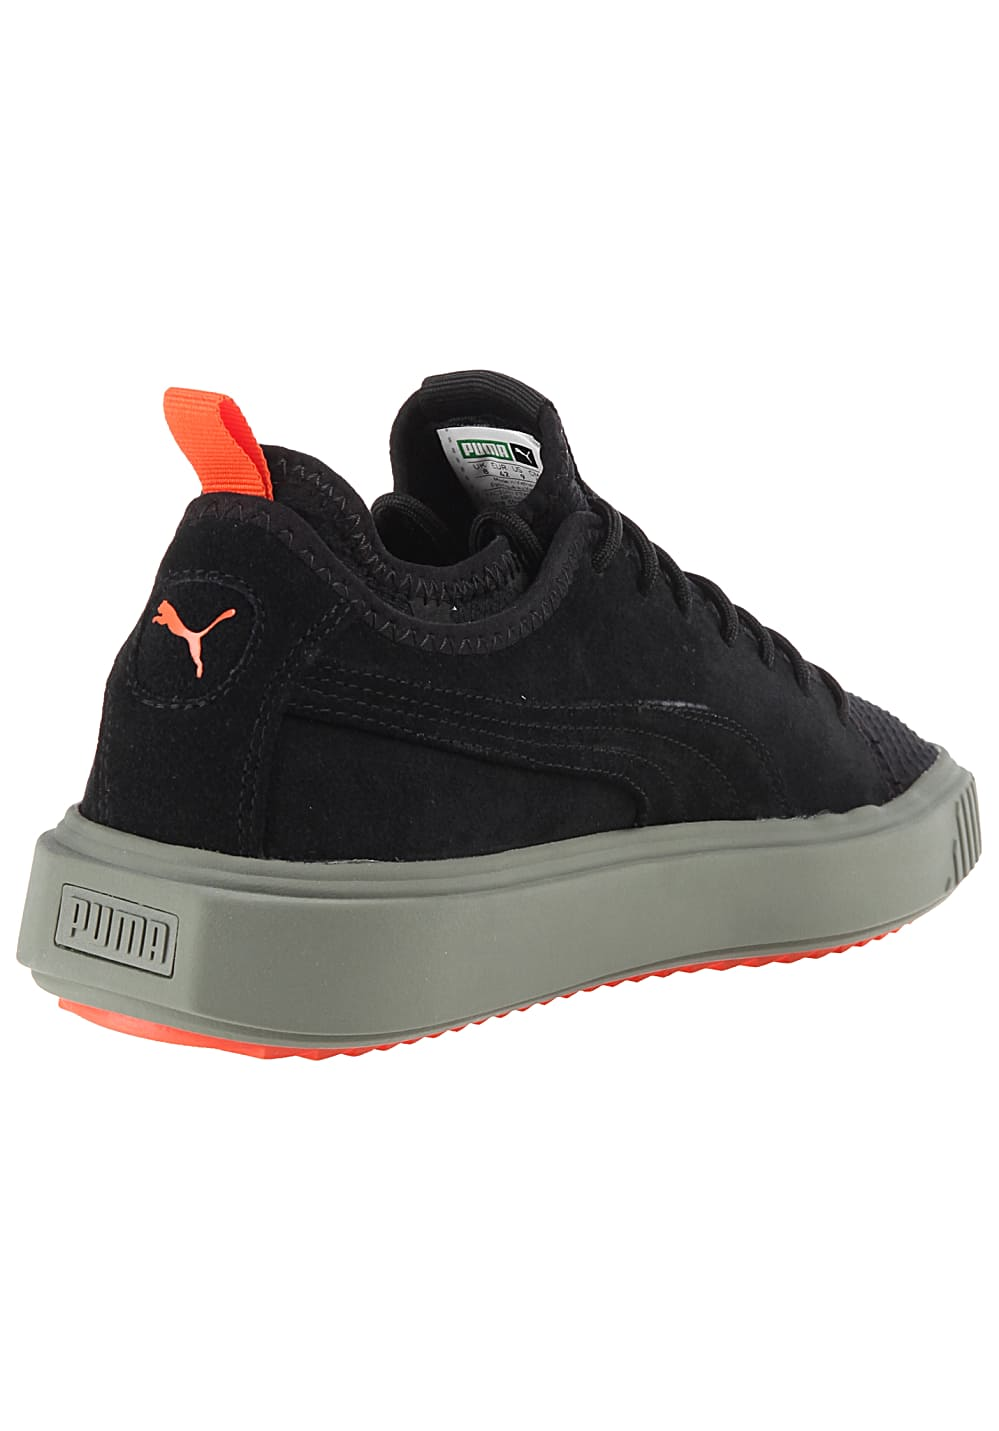 294317980af006 Next. -10%. This product is currently out of stock. Puma. Breaker Mesh  Fight or Flight - Sneakers